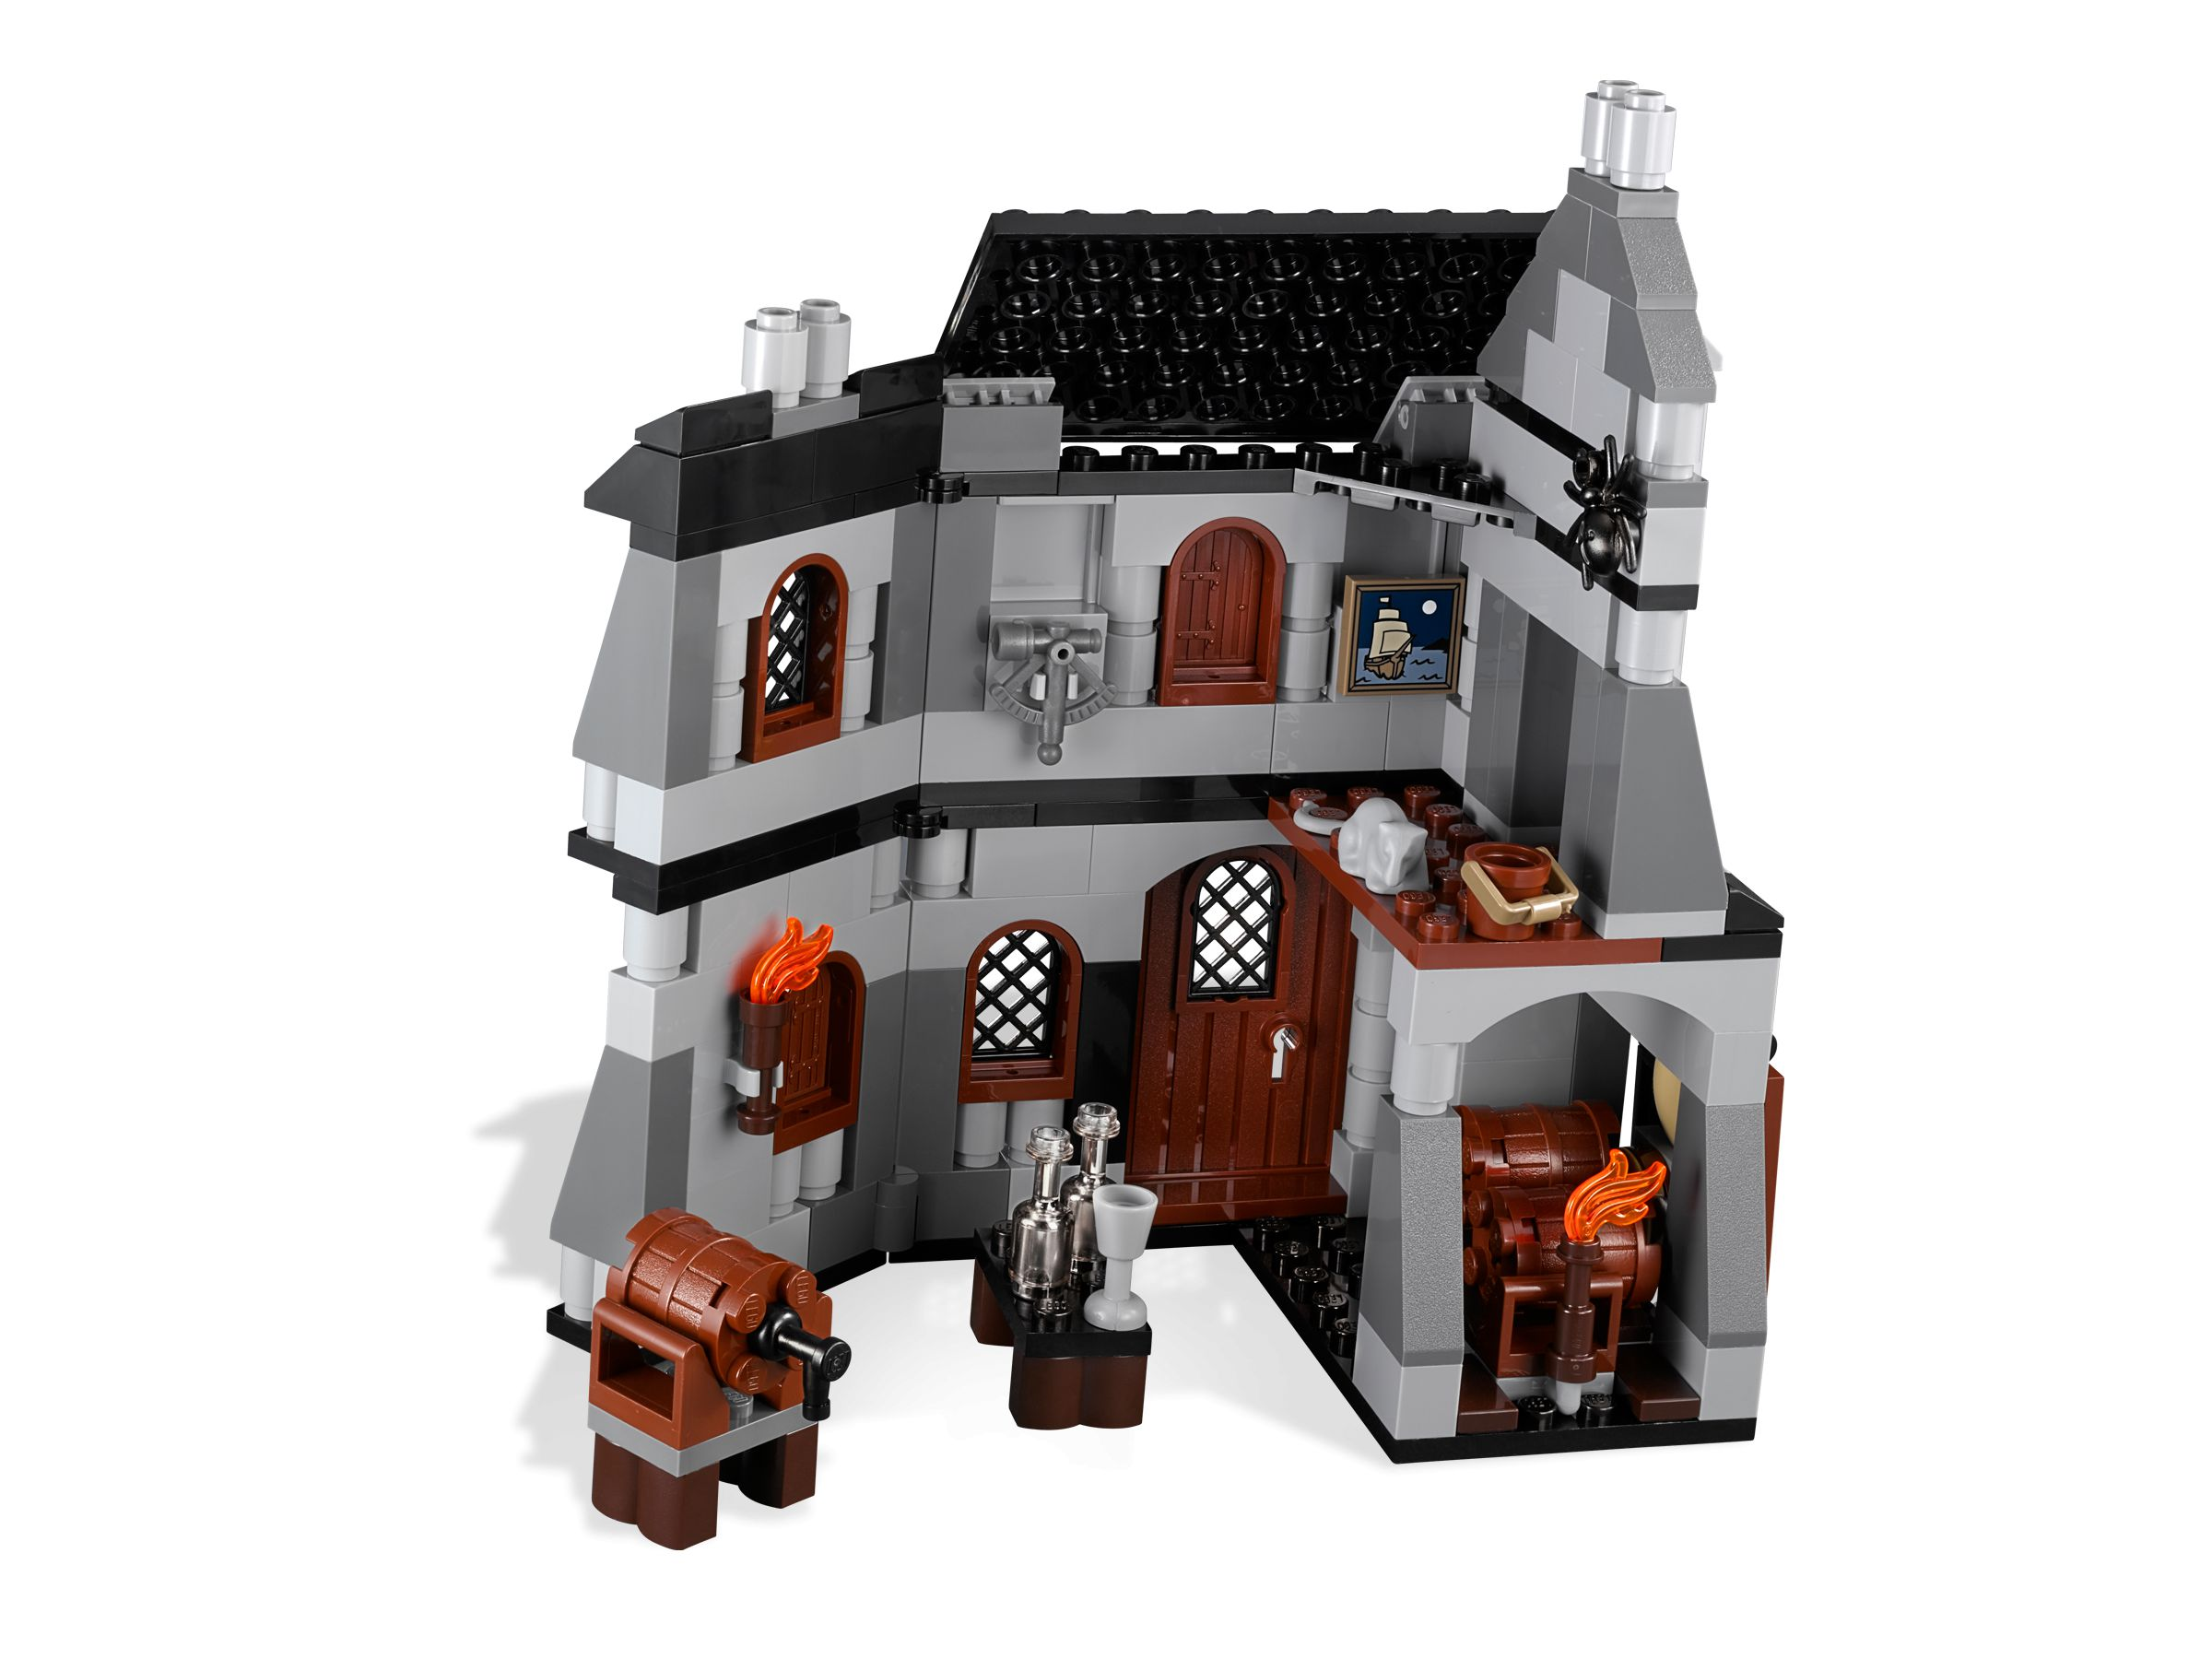 LEGO Pirates of the Caribbean 4193 Flucht aus London LEGO_4193_alt2.jpg